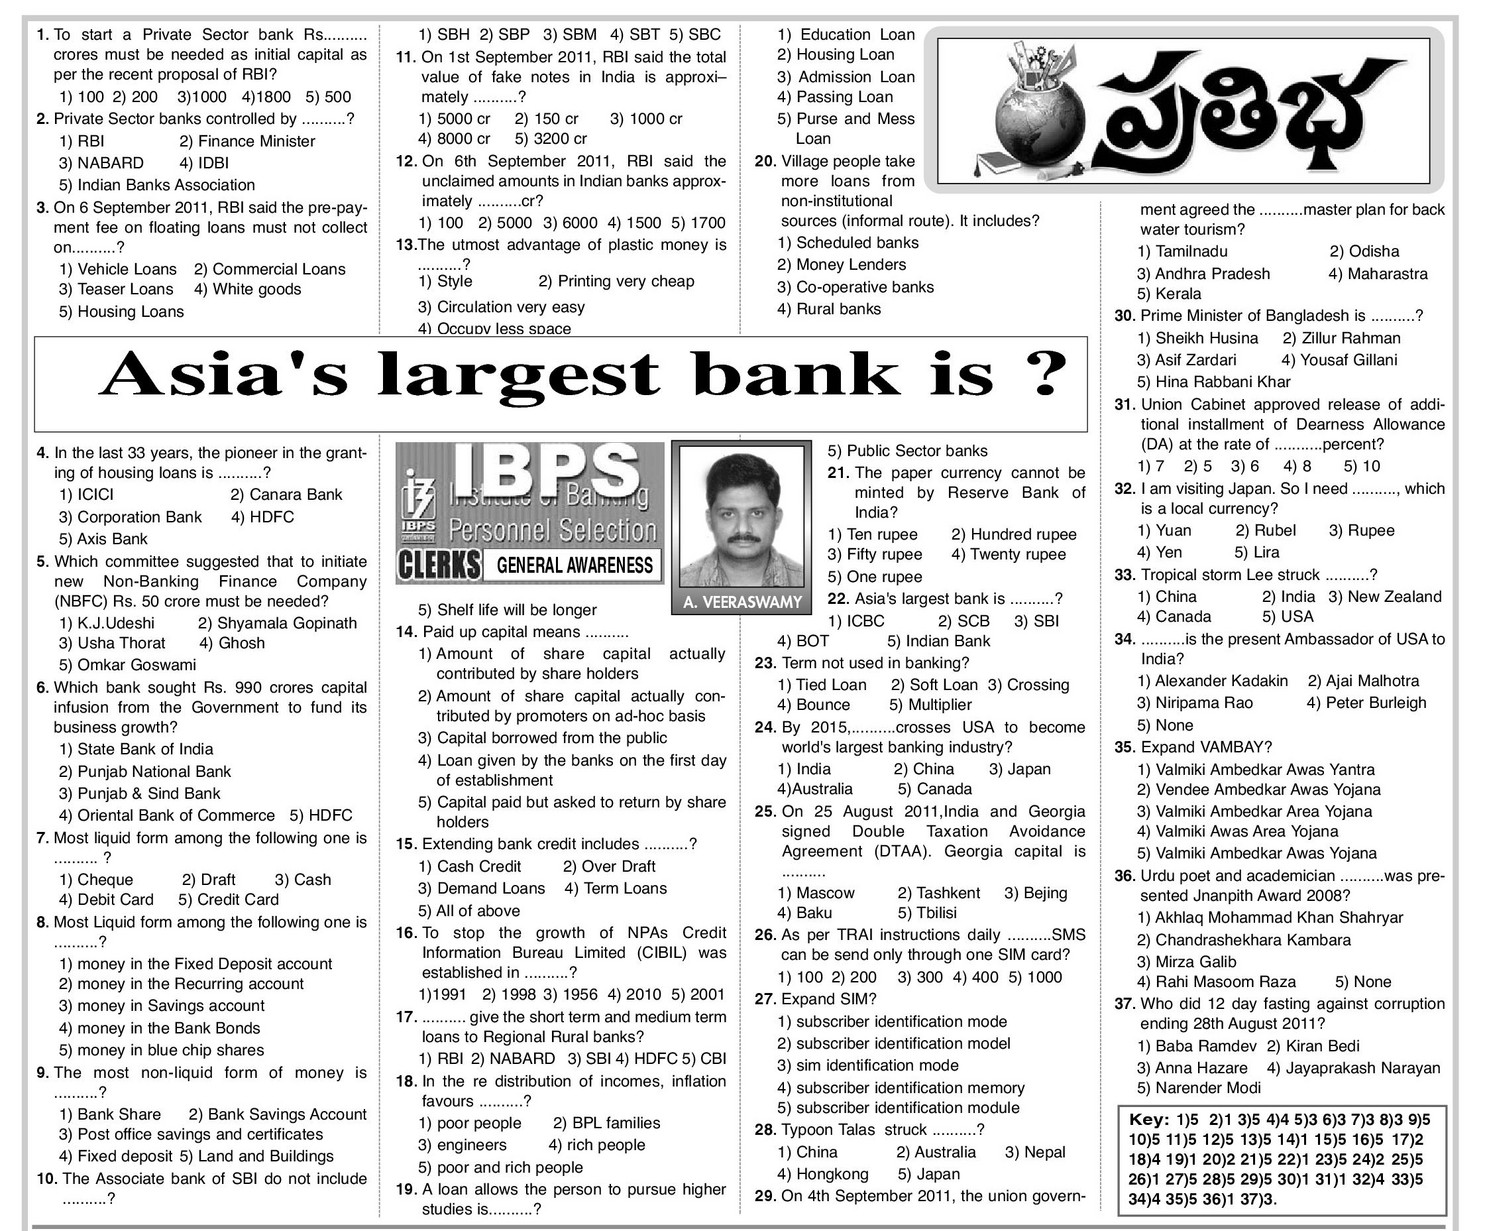 IBPS Practice questions from eenadu prathiba ~ All in One